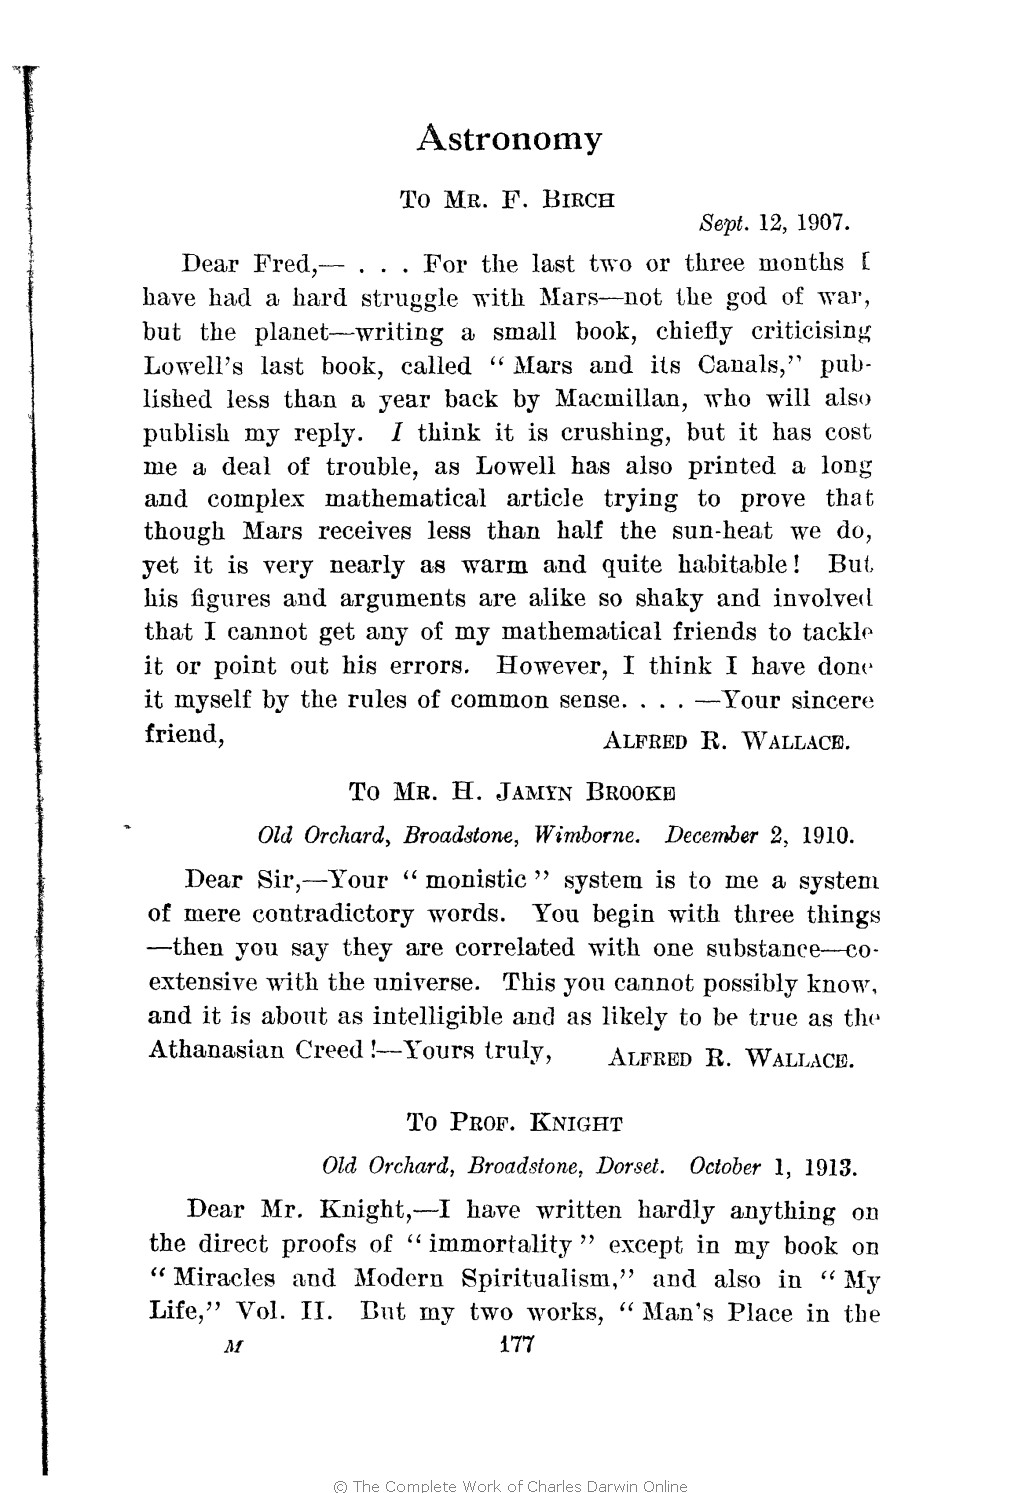 6ada66aa96508 Marchant, James ed. 1916. Alfred Russel Wallace letters and reminiscences.  London: Cassell. Volume 2.